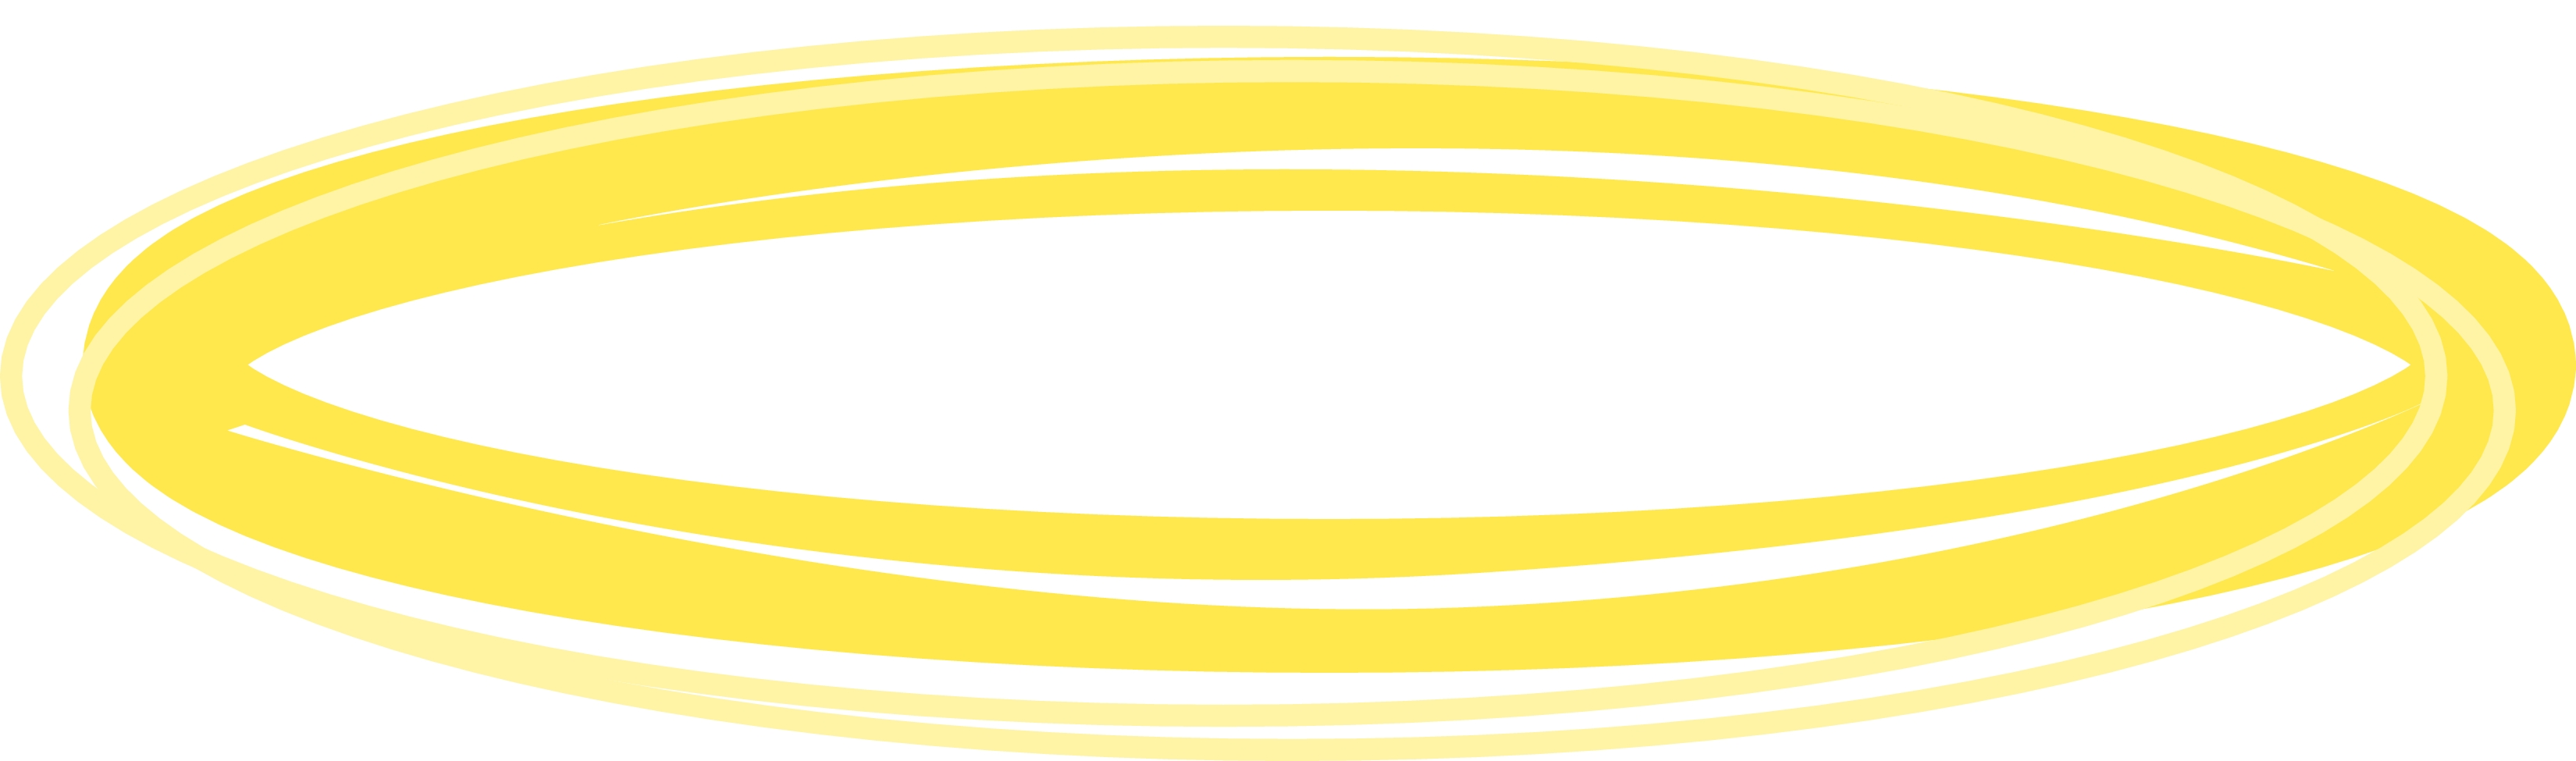 banner free stock Free cliparts download clip. Halo clipart.